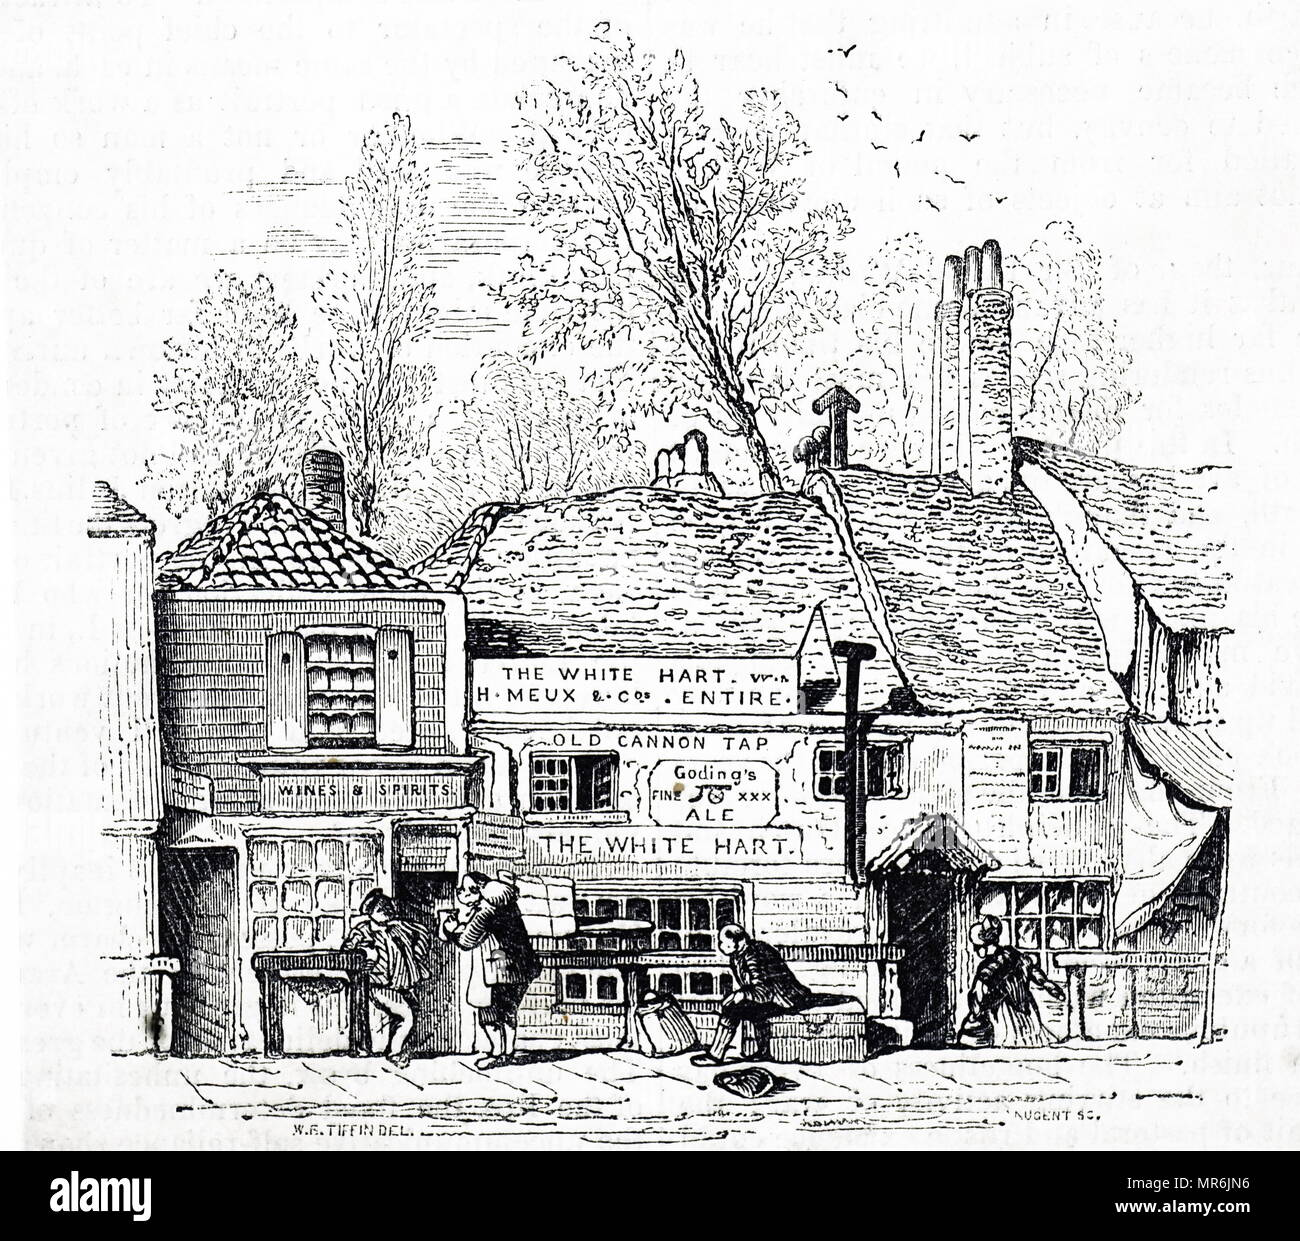 Engraving depicting the White Hart Inn, Knightsbridge, London. This inn was a watering homes for hackney carriage as well as a resting place for porter. Dated 19th century - Stock Image